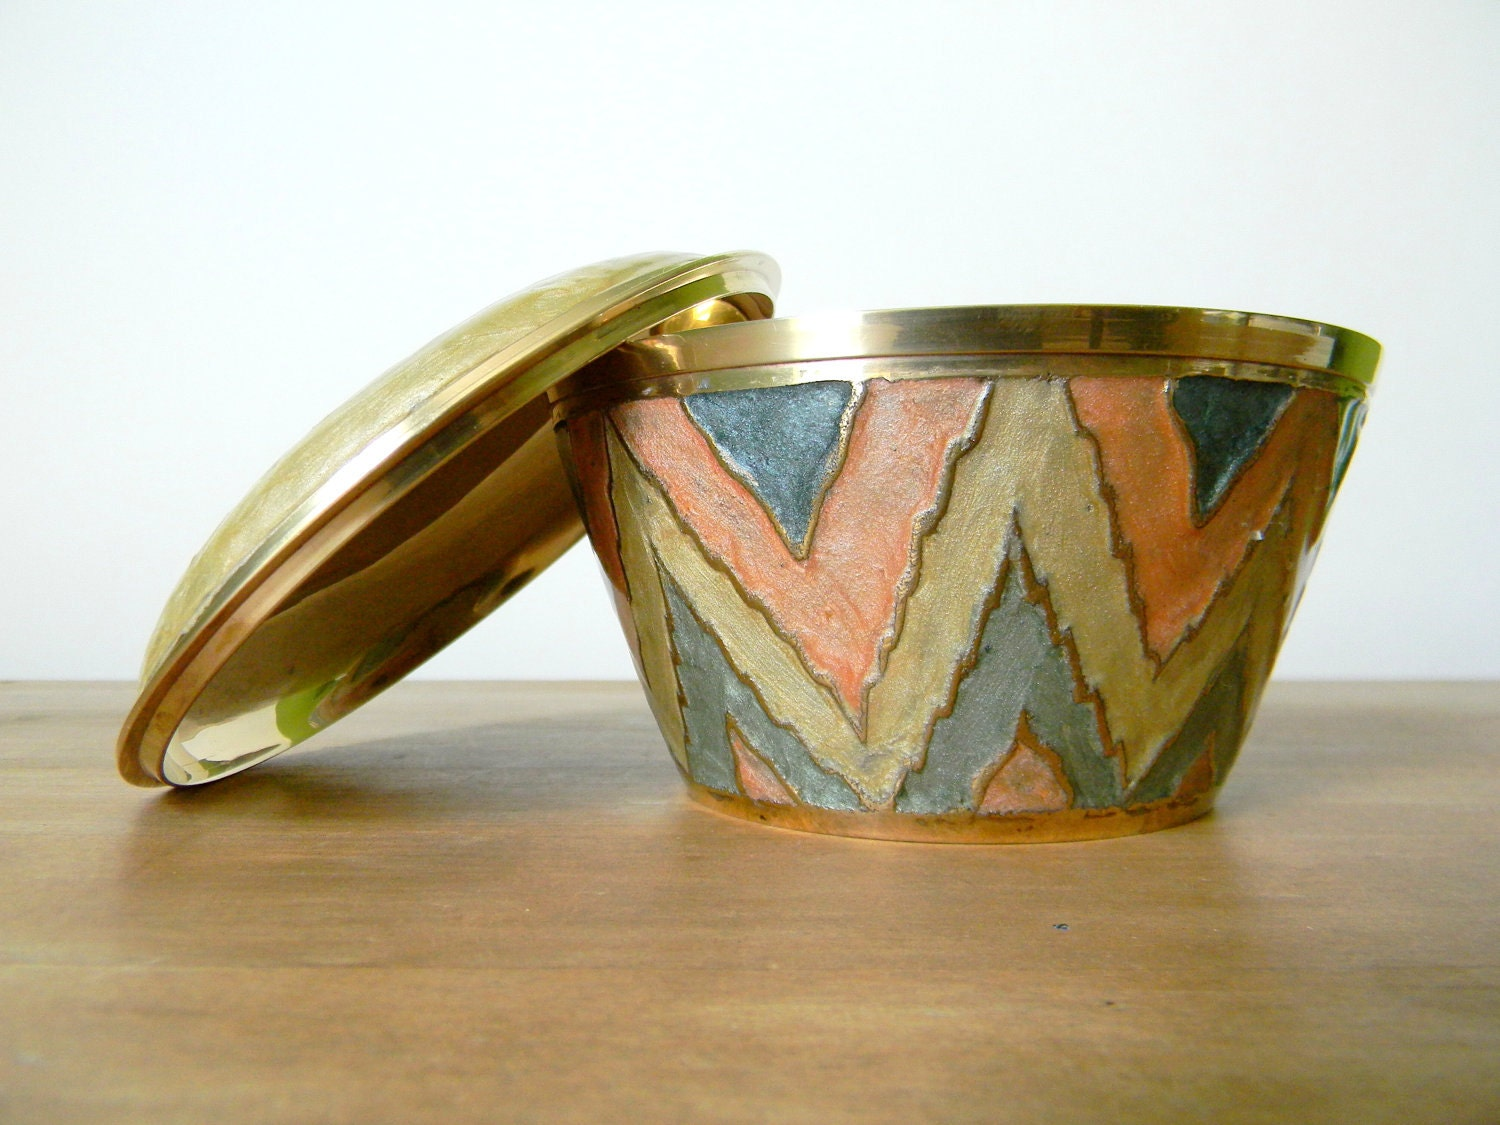 Vintage brass and enamel lidded bowl